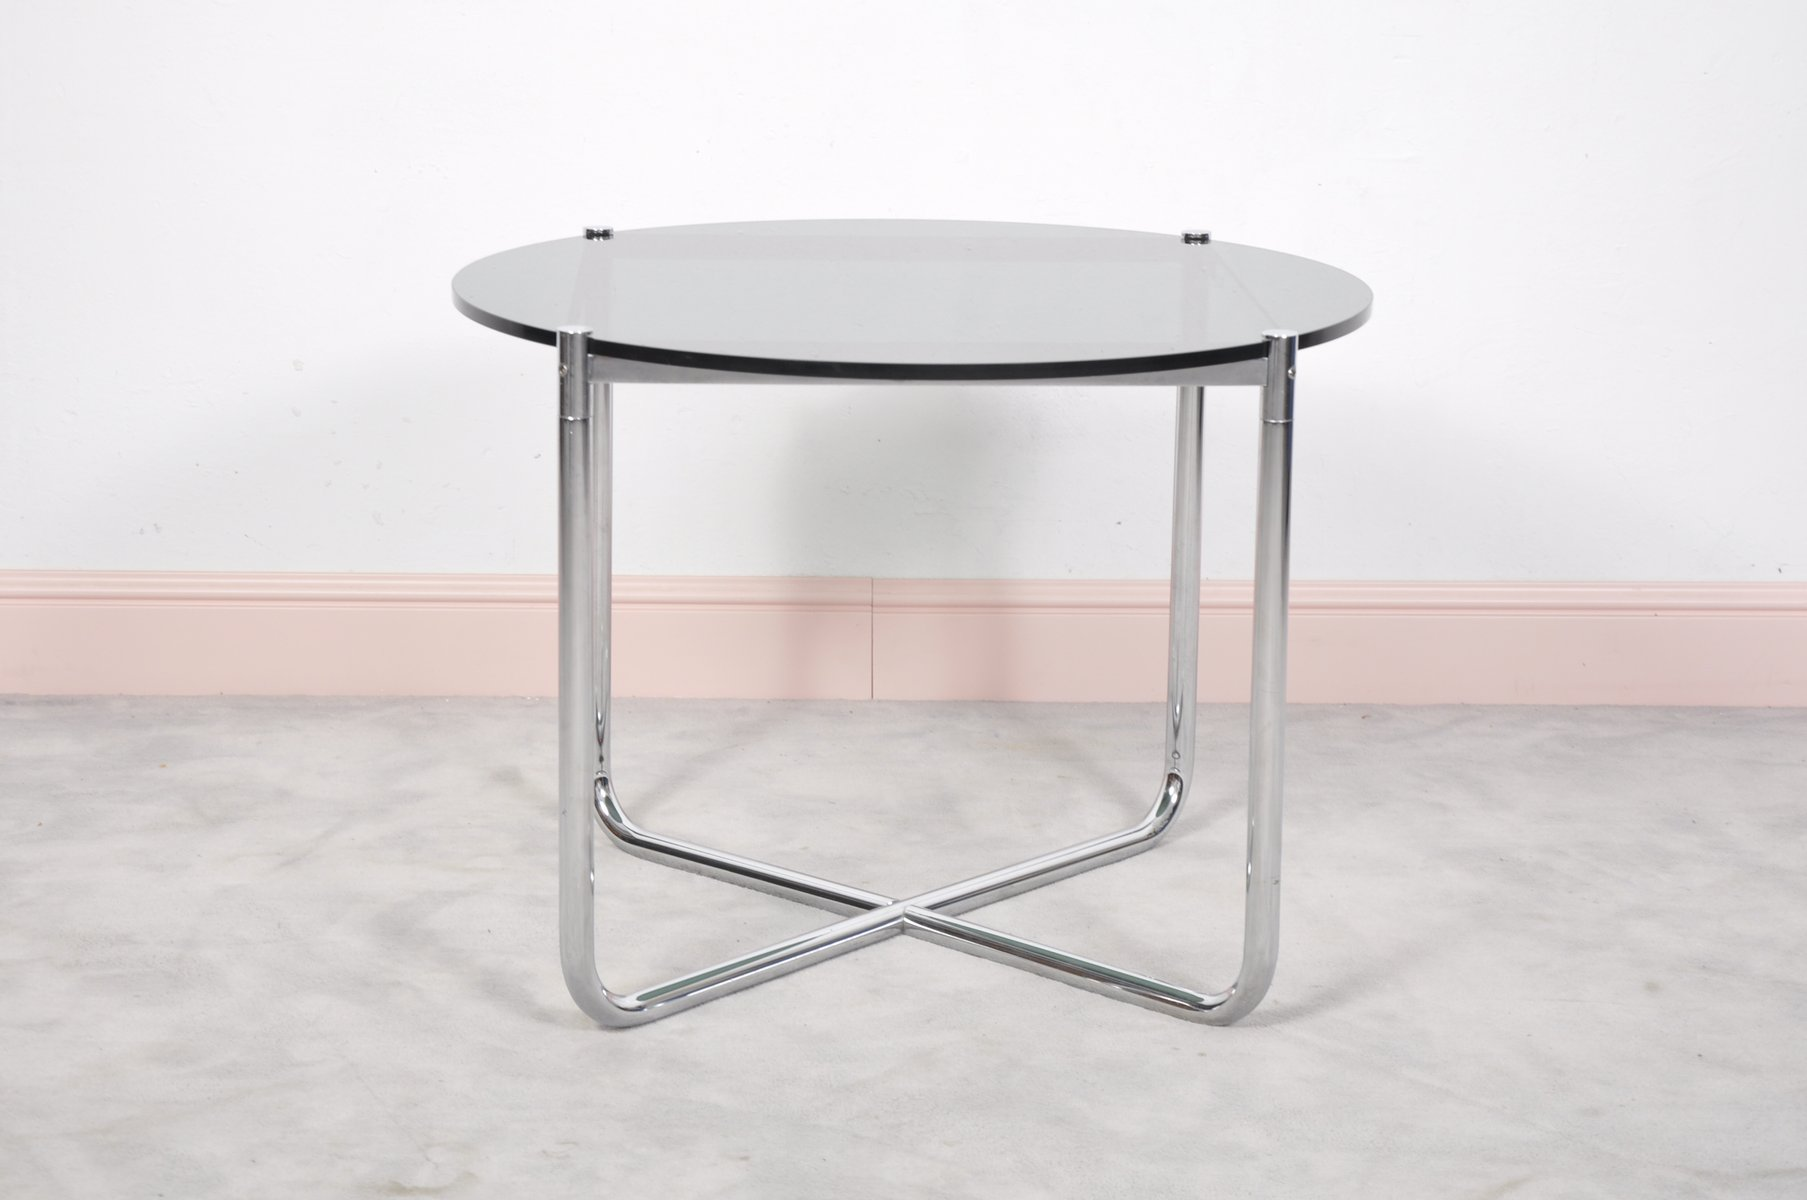 mr side table by ludwig mies van der rohe for knoll. Black Bedroom Furniture Sets. Home Design Ideas